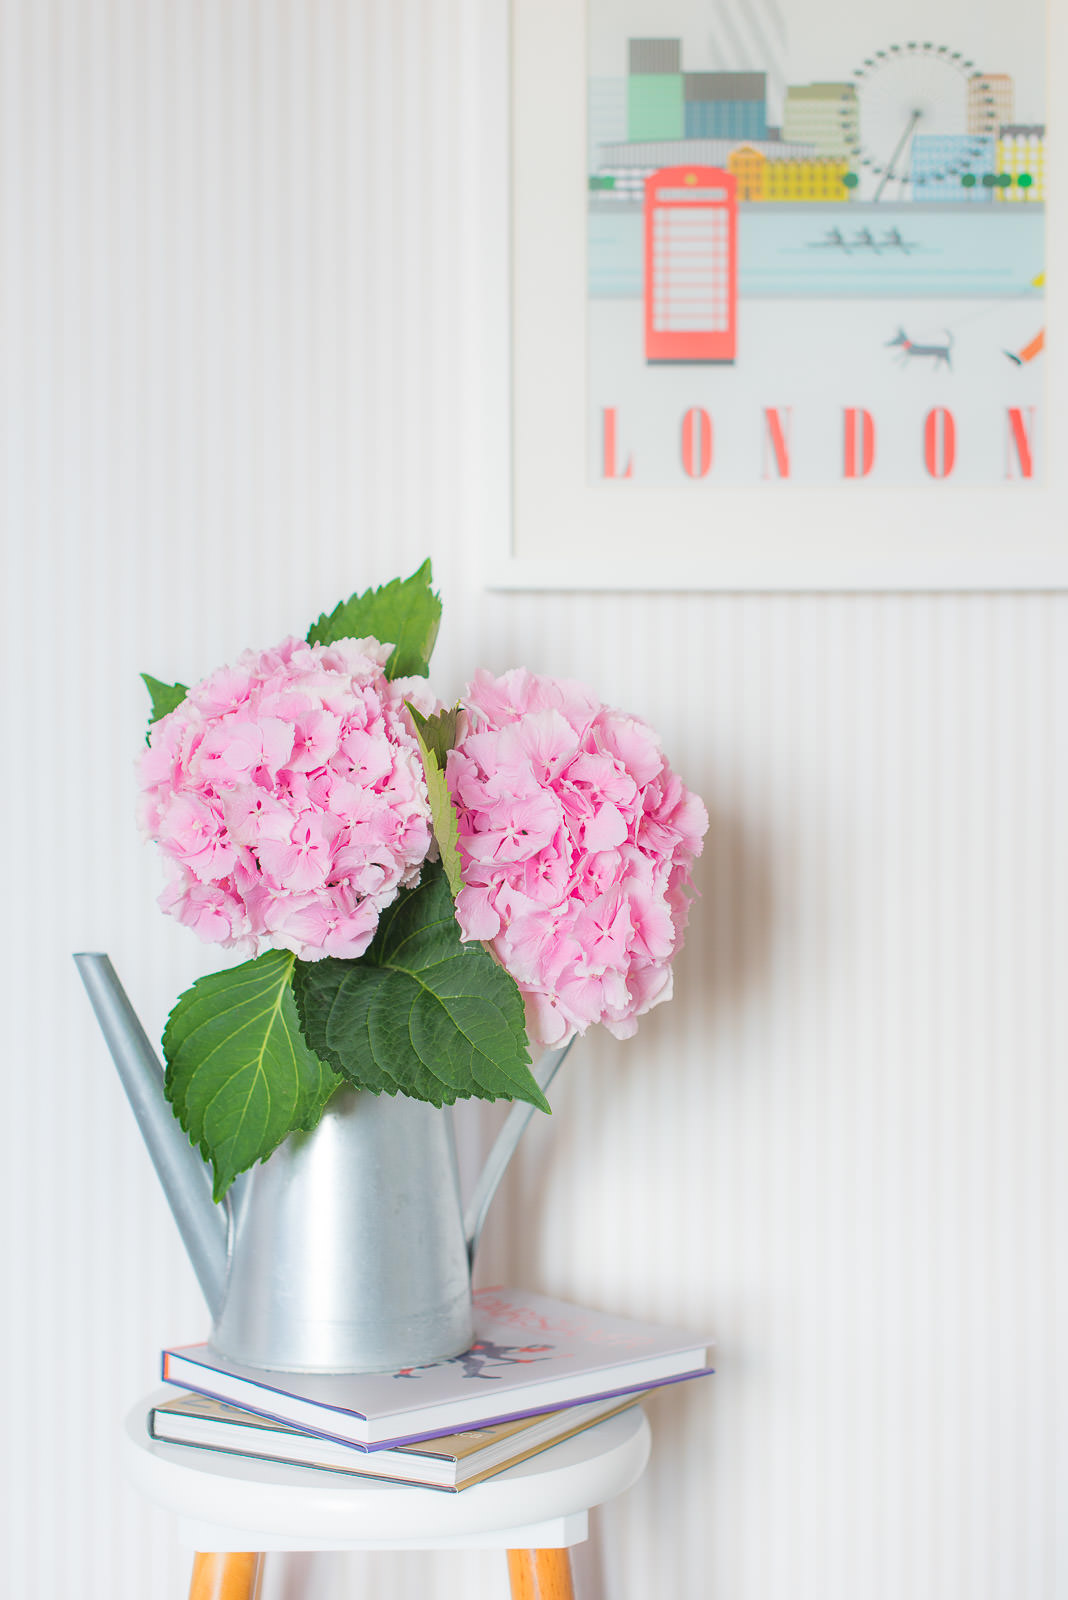 Blog-mode-and-the-city-lifestyle-les-cinq-petites-choses-140-hortensias